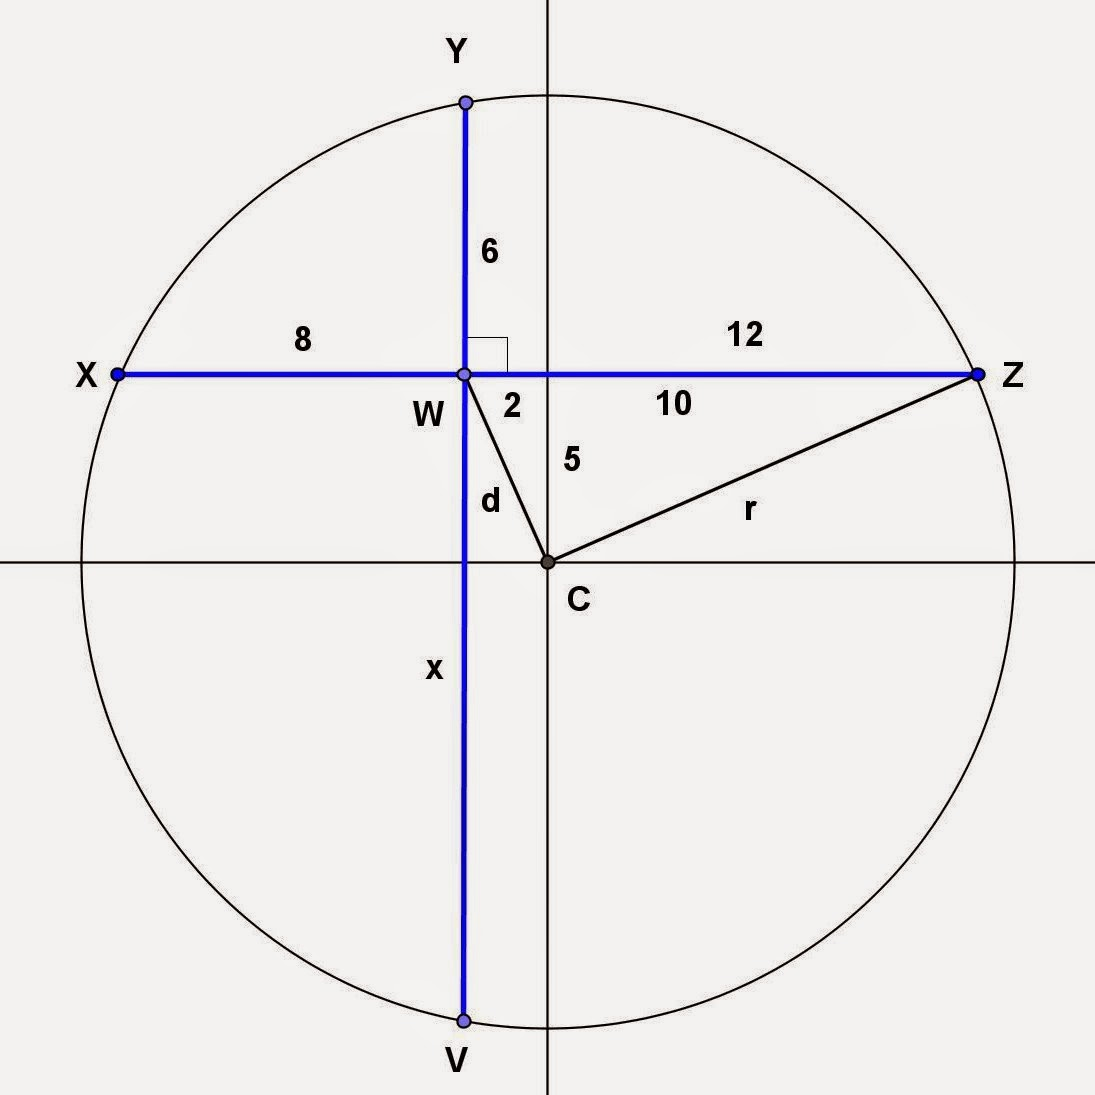 Math principles circle and secant segment problems 4 photo by math principles in everyday life hexwebz Gallery